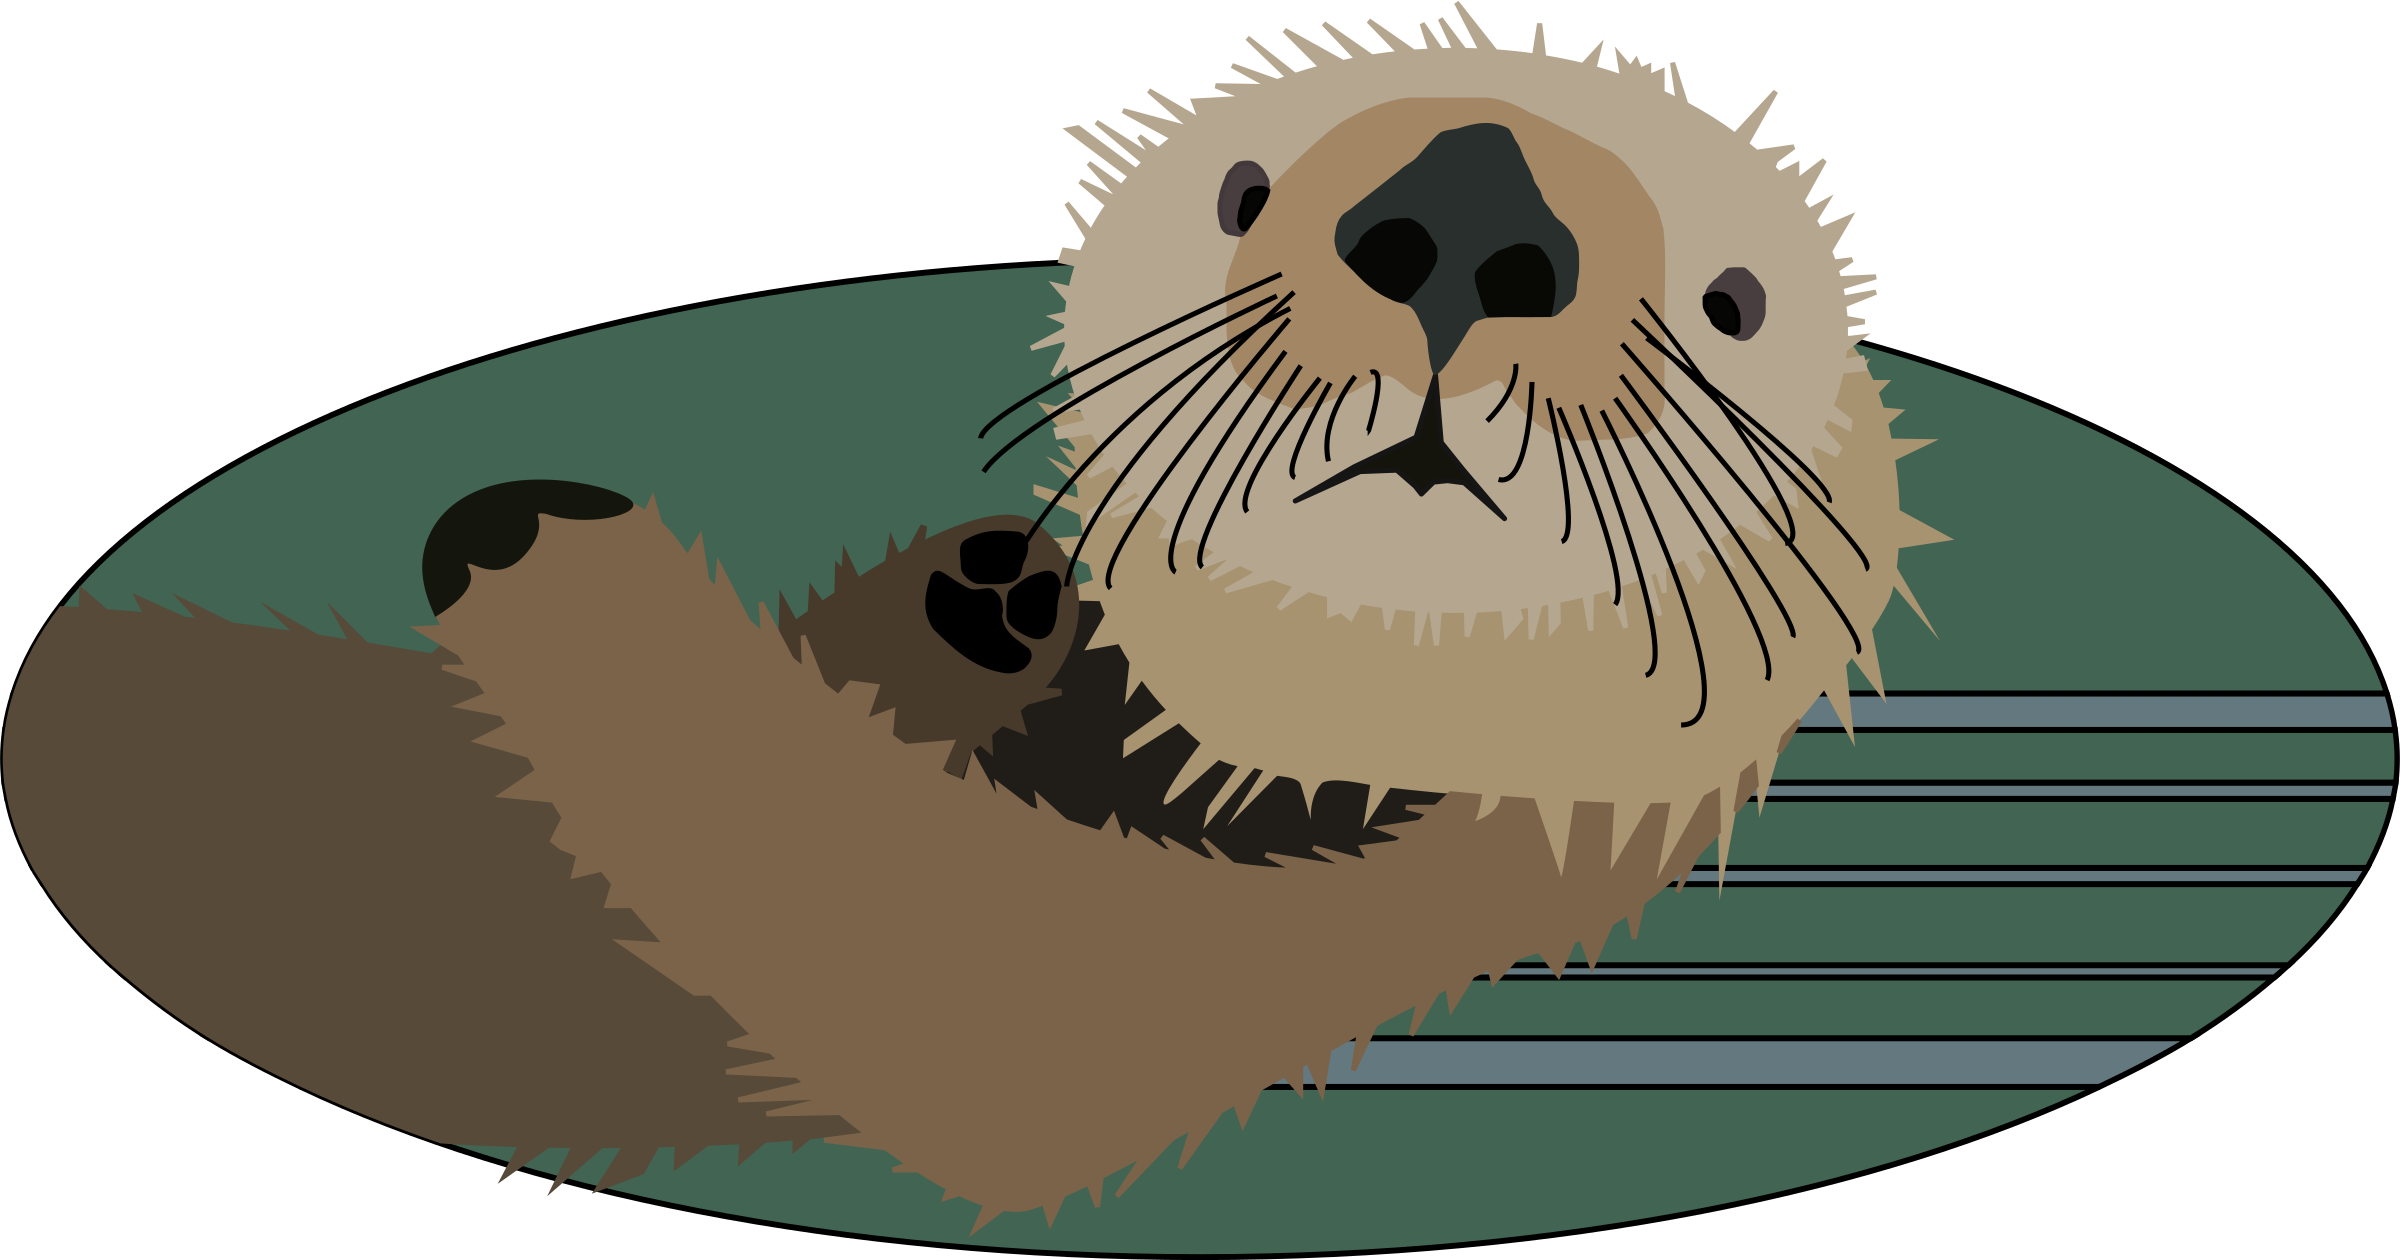 Sea otter by markc09